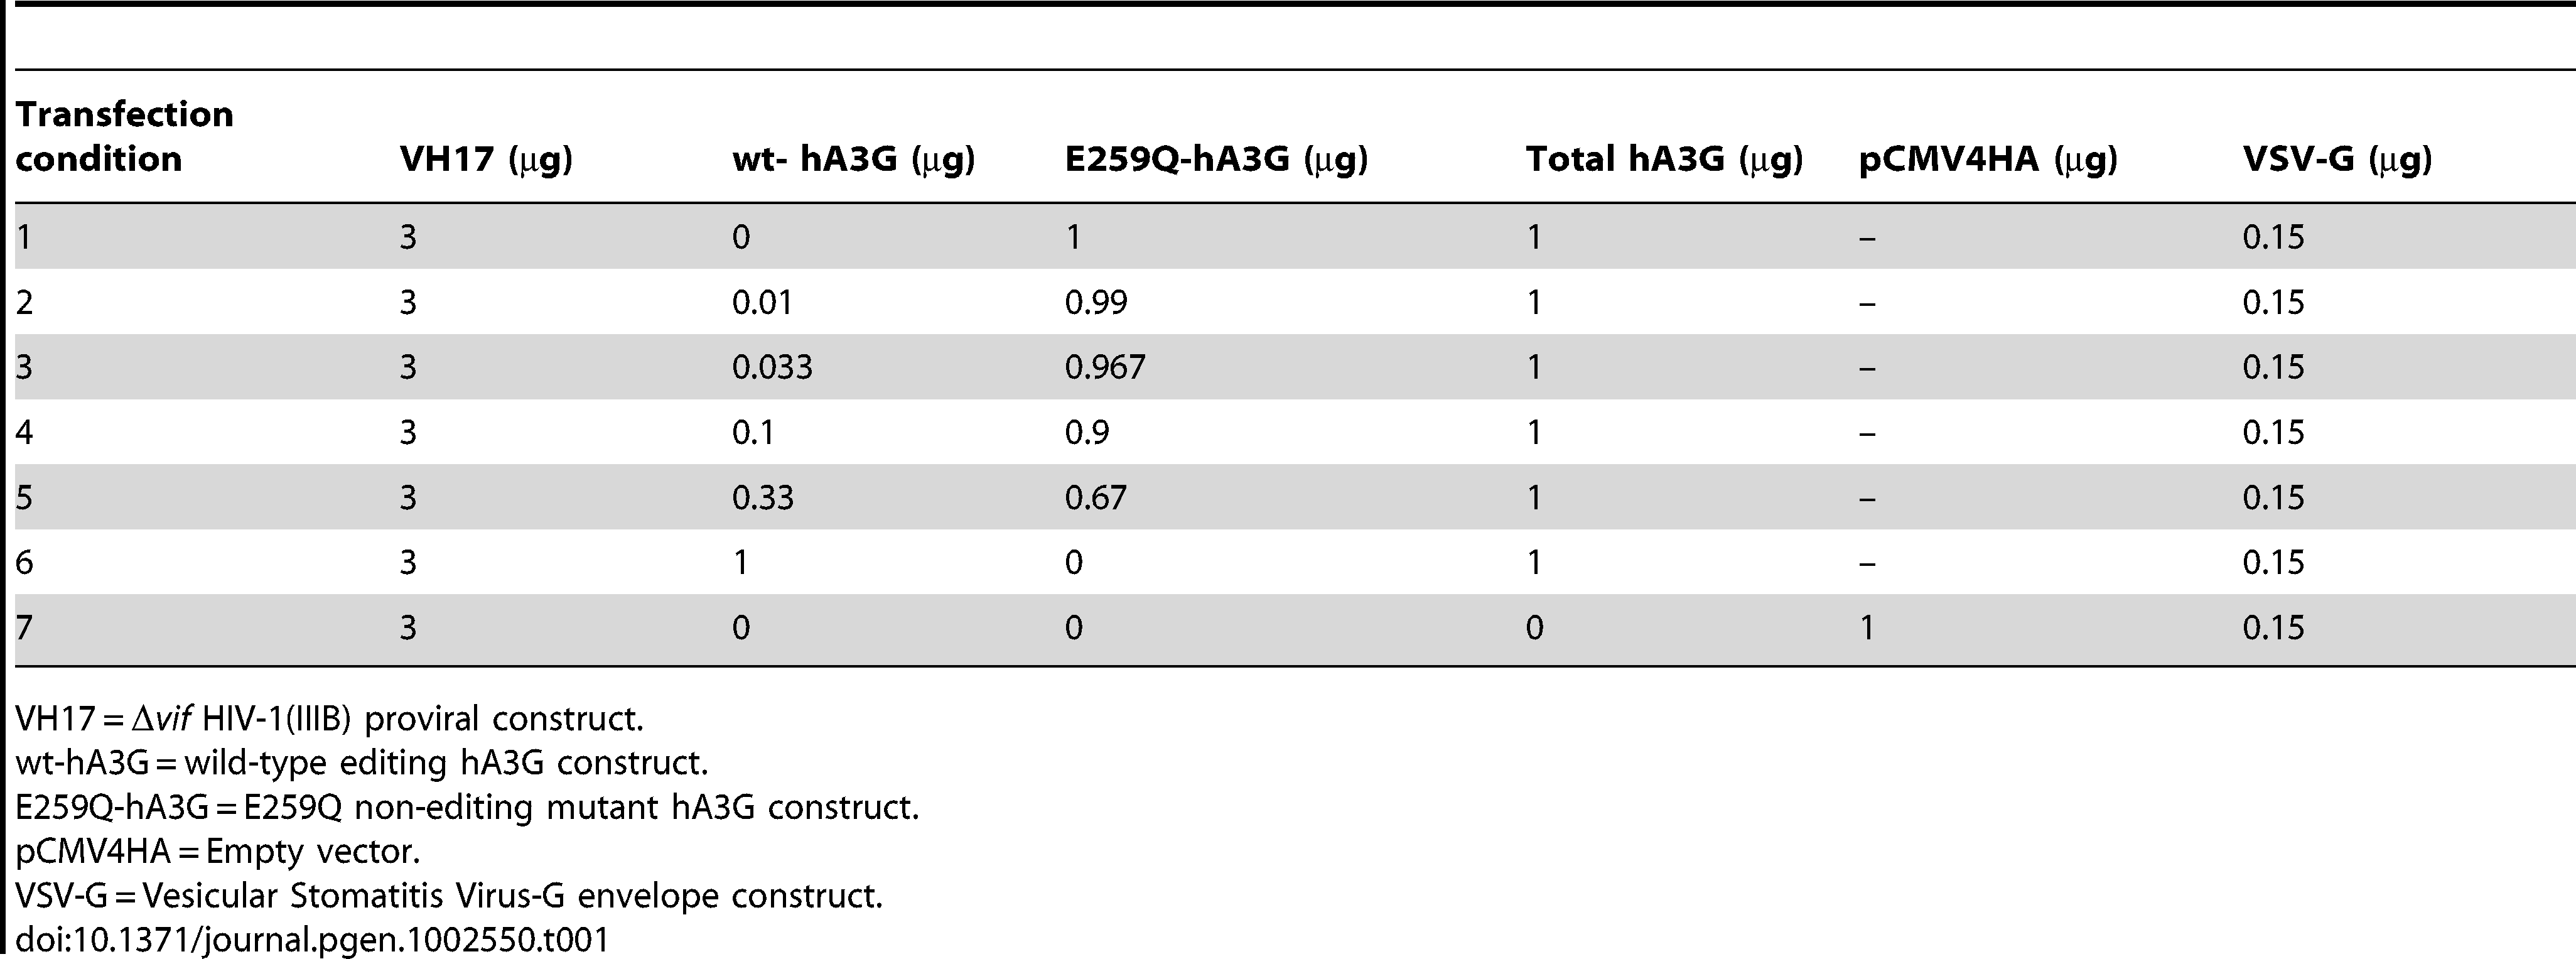 hA3G titration transfection conditions.